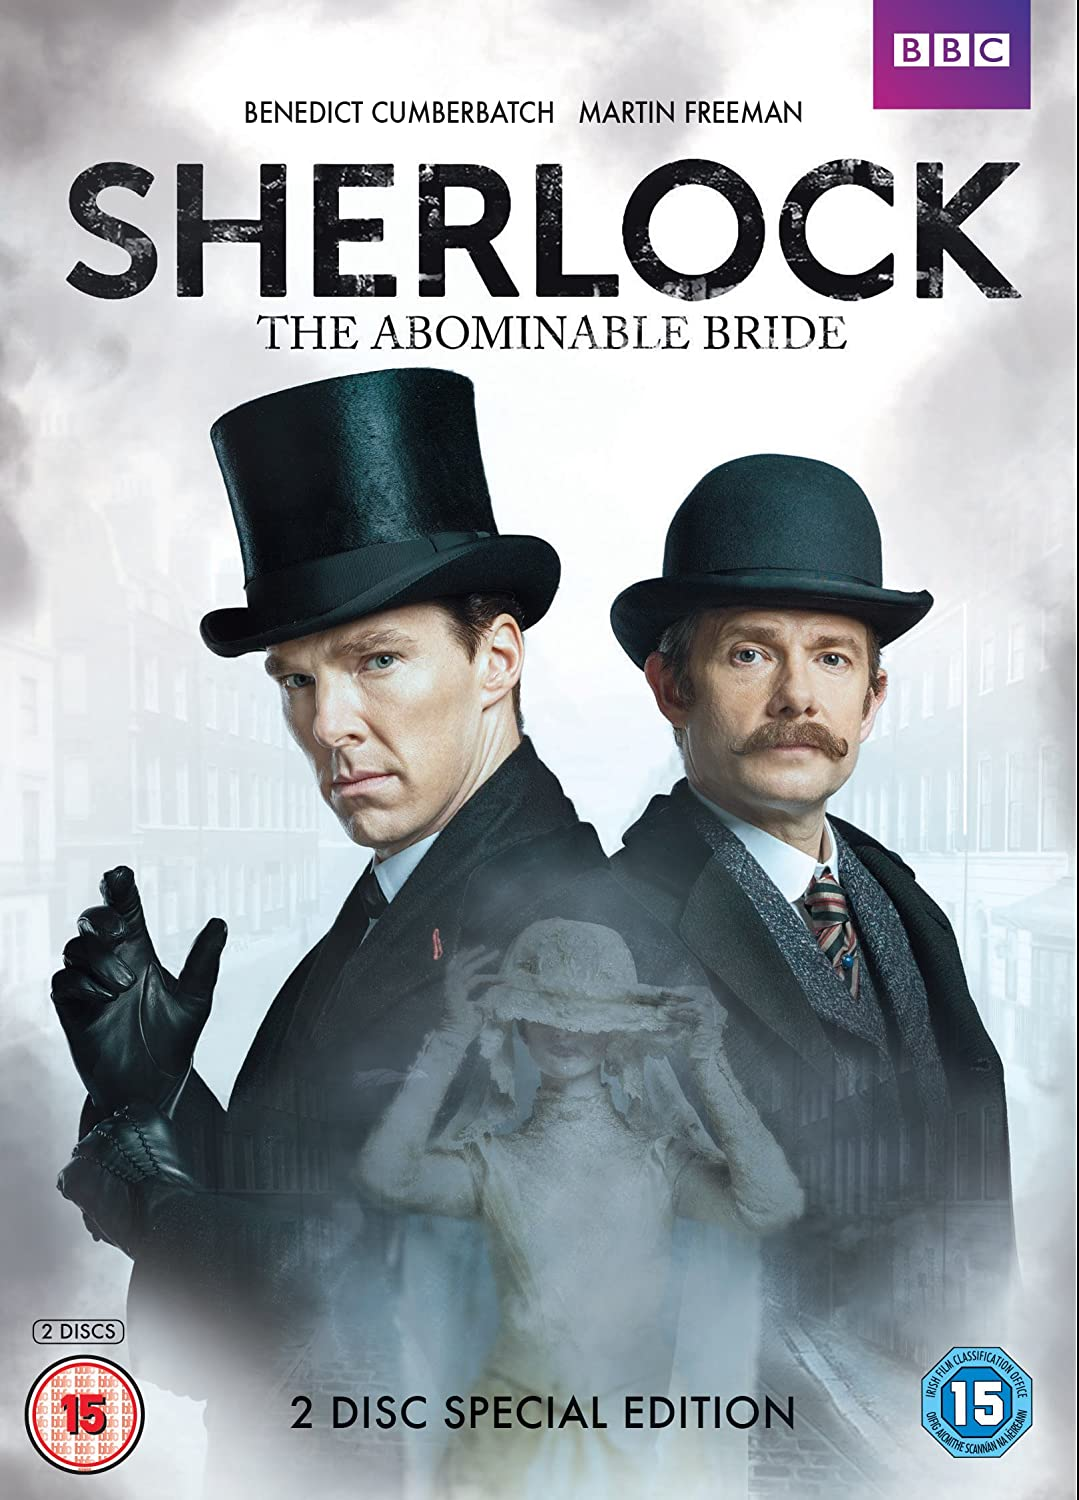 Sherlock - The Abominable Bride [DVD] [2016]: Amazon.co.uk ...